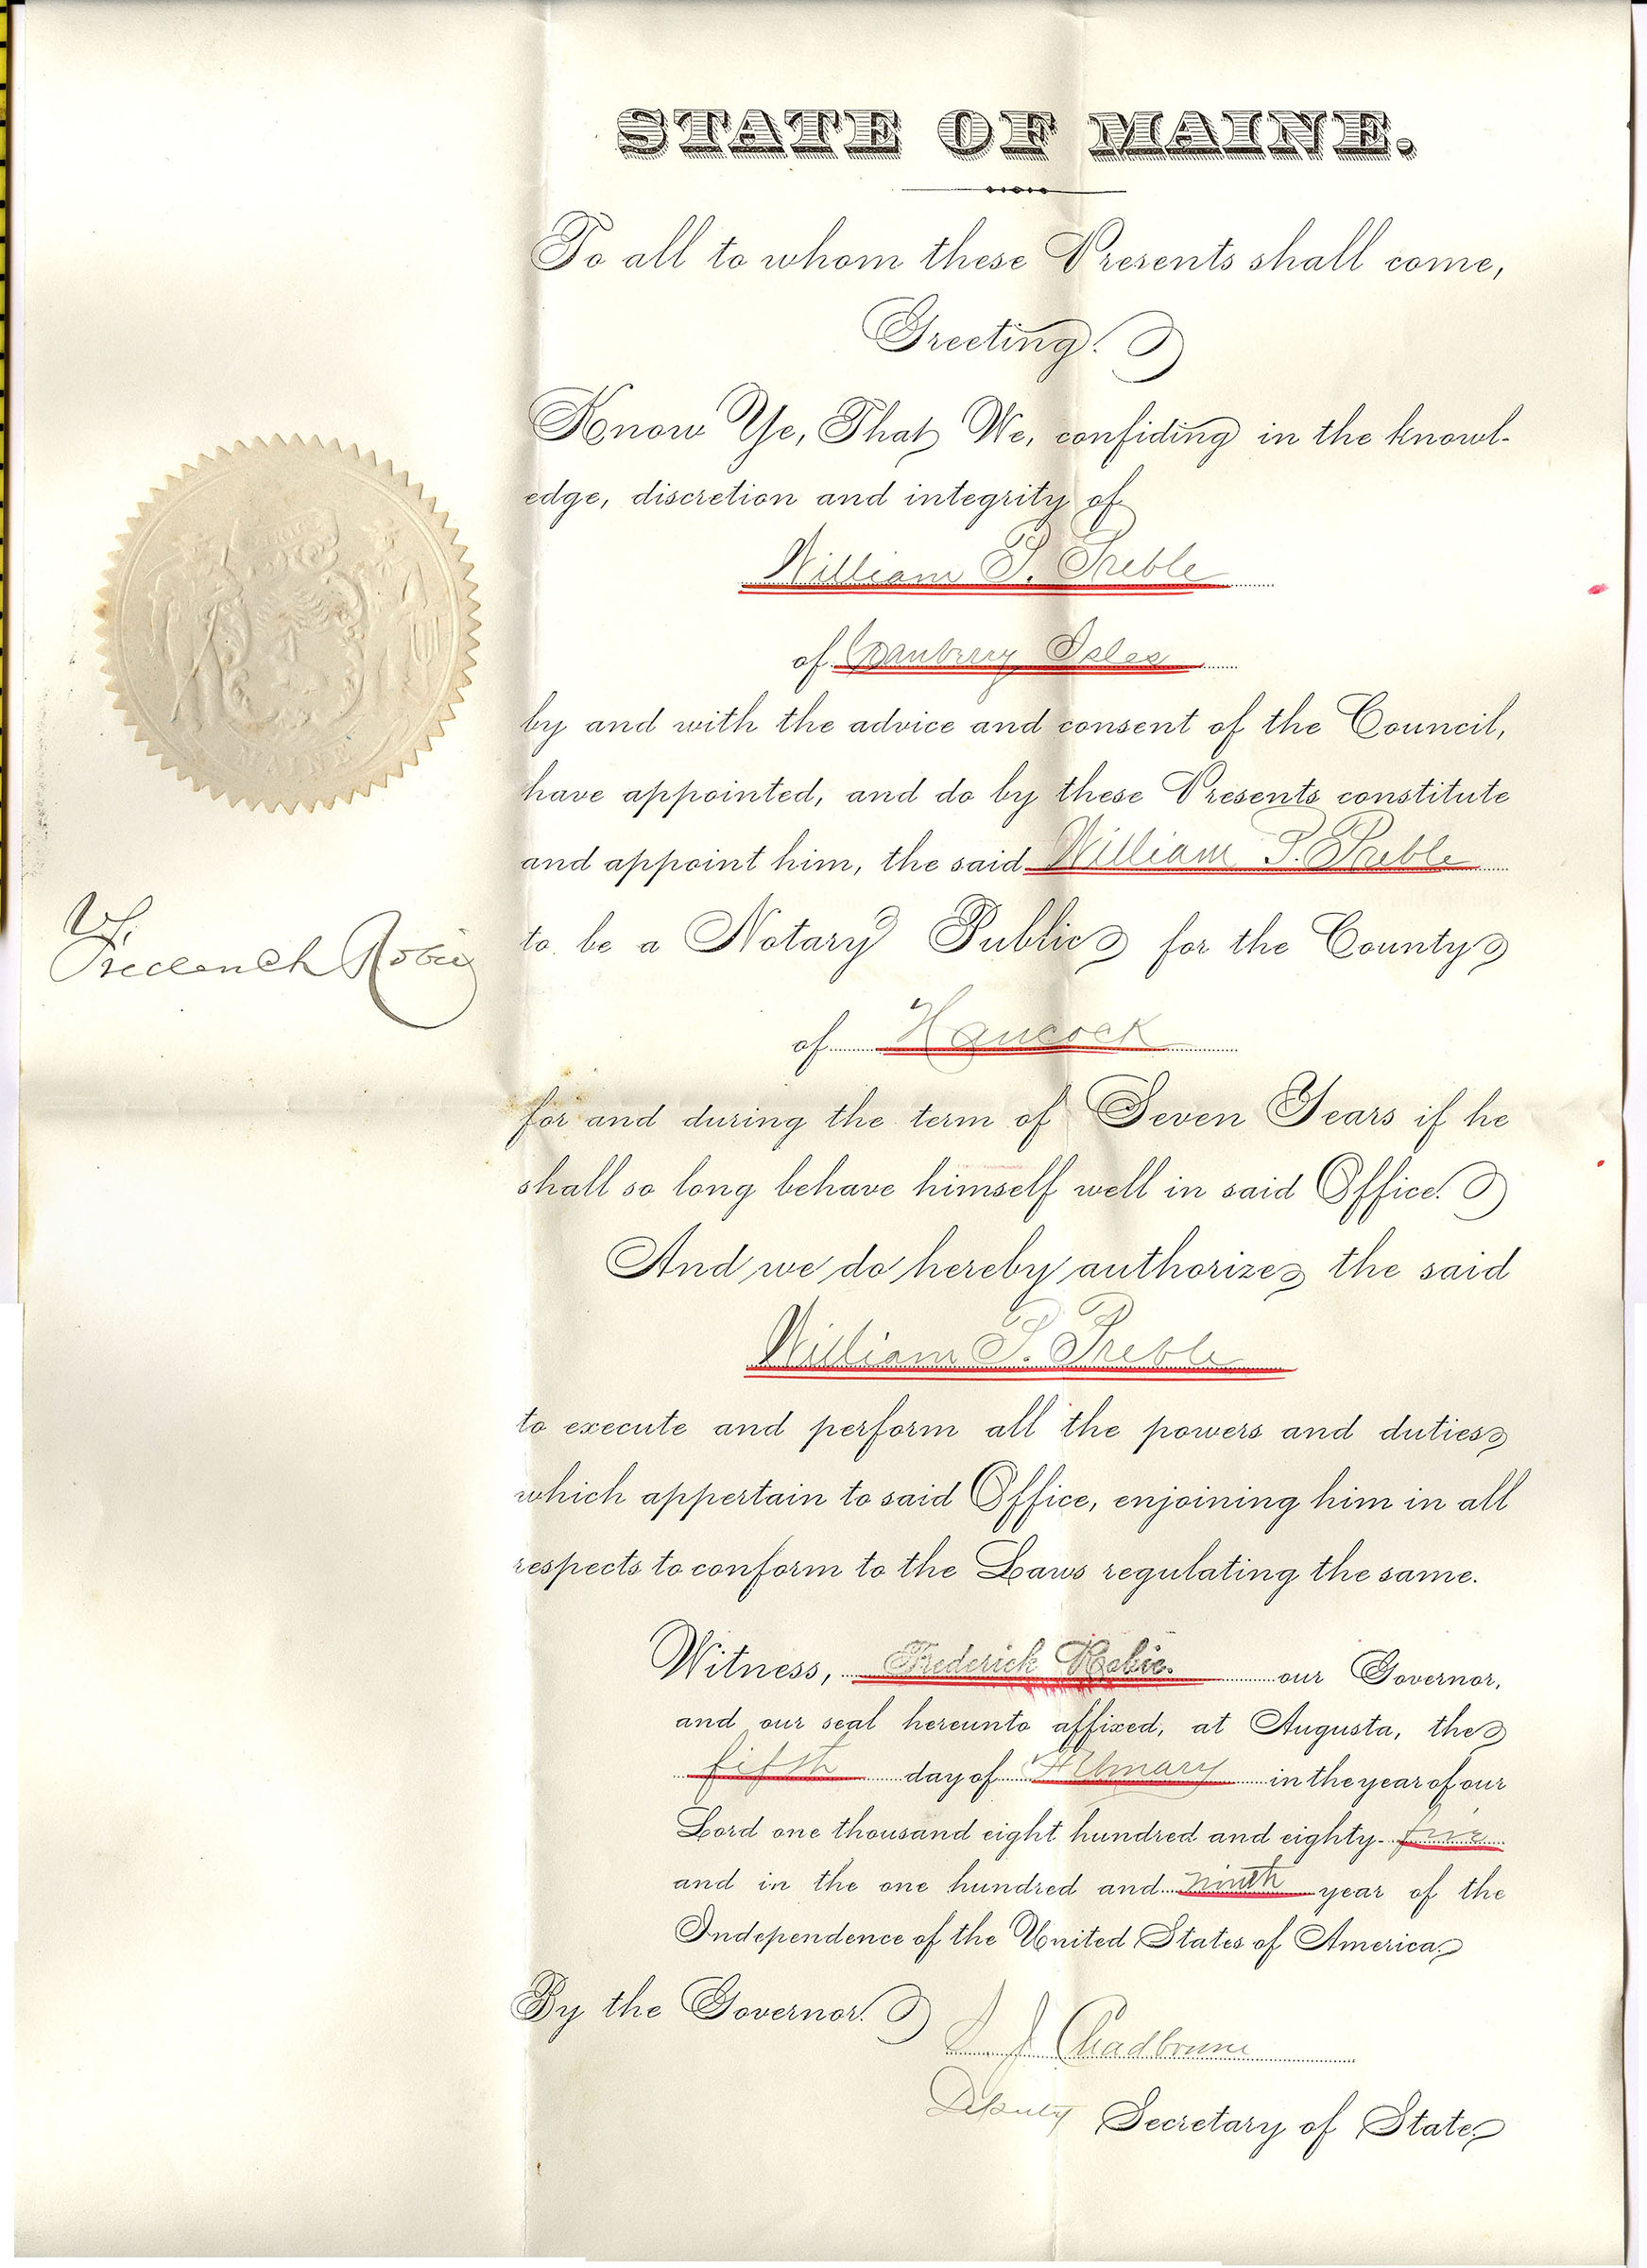 William P. Preble appointed Notary Public